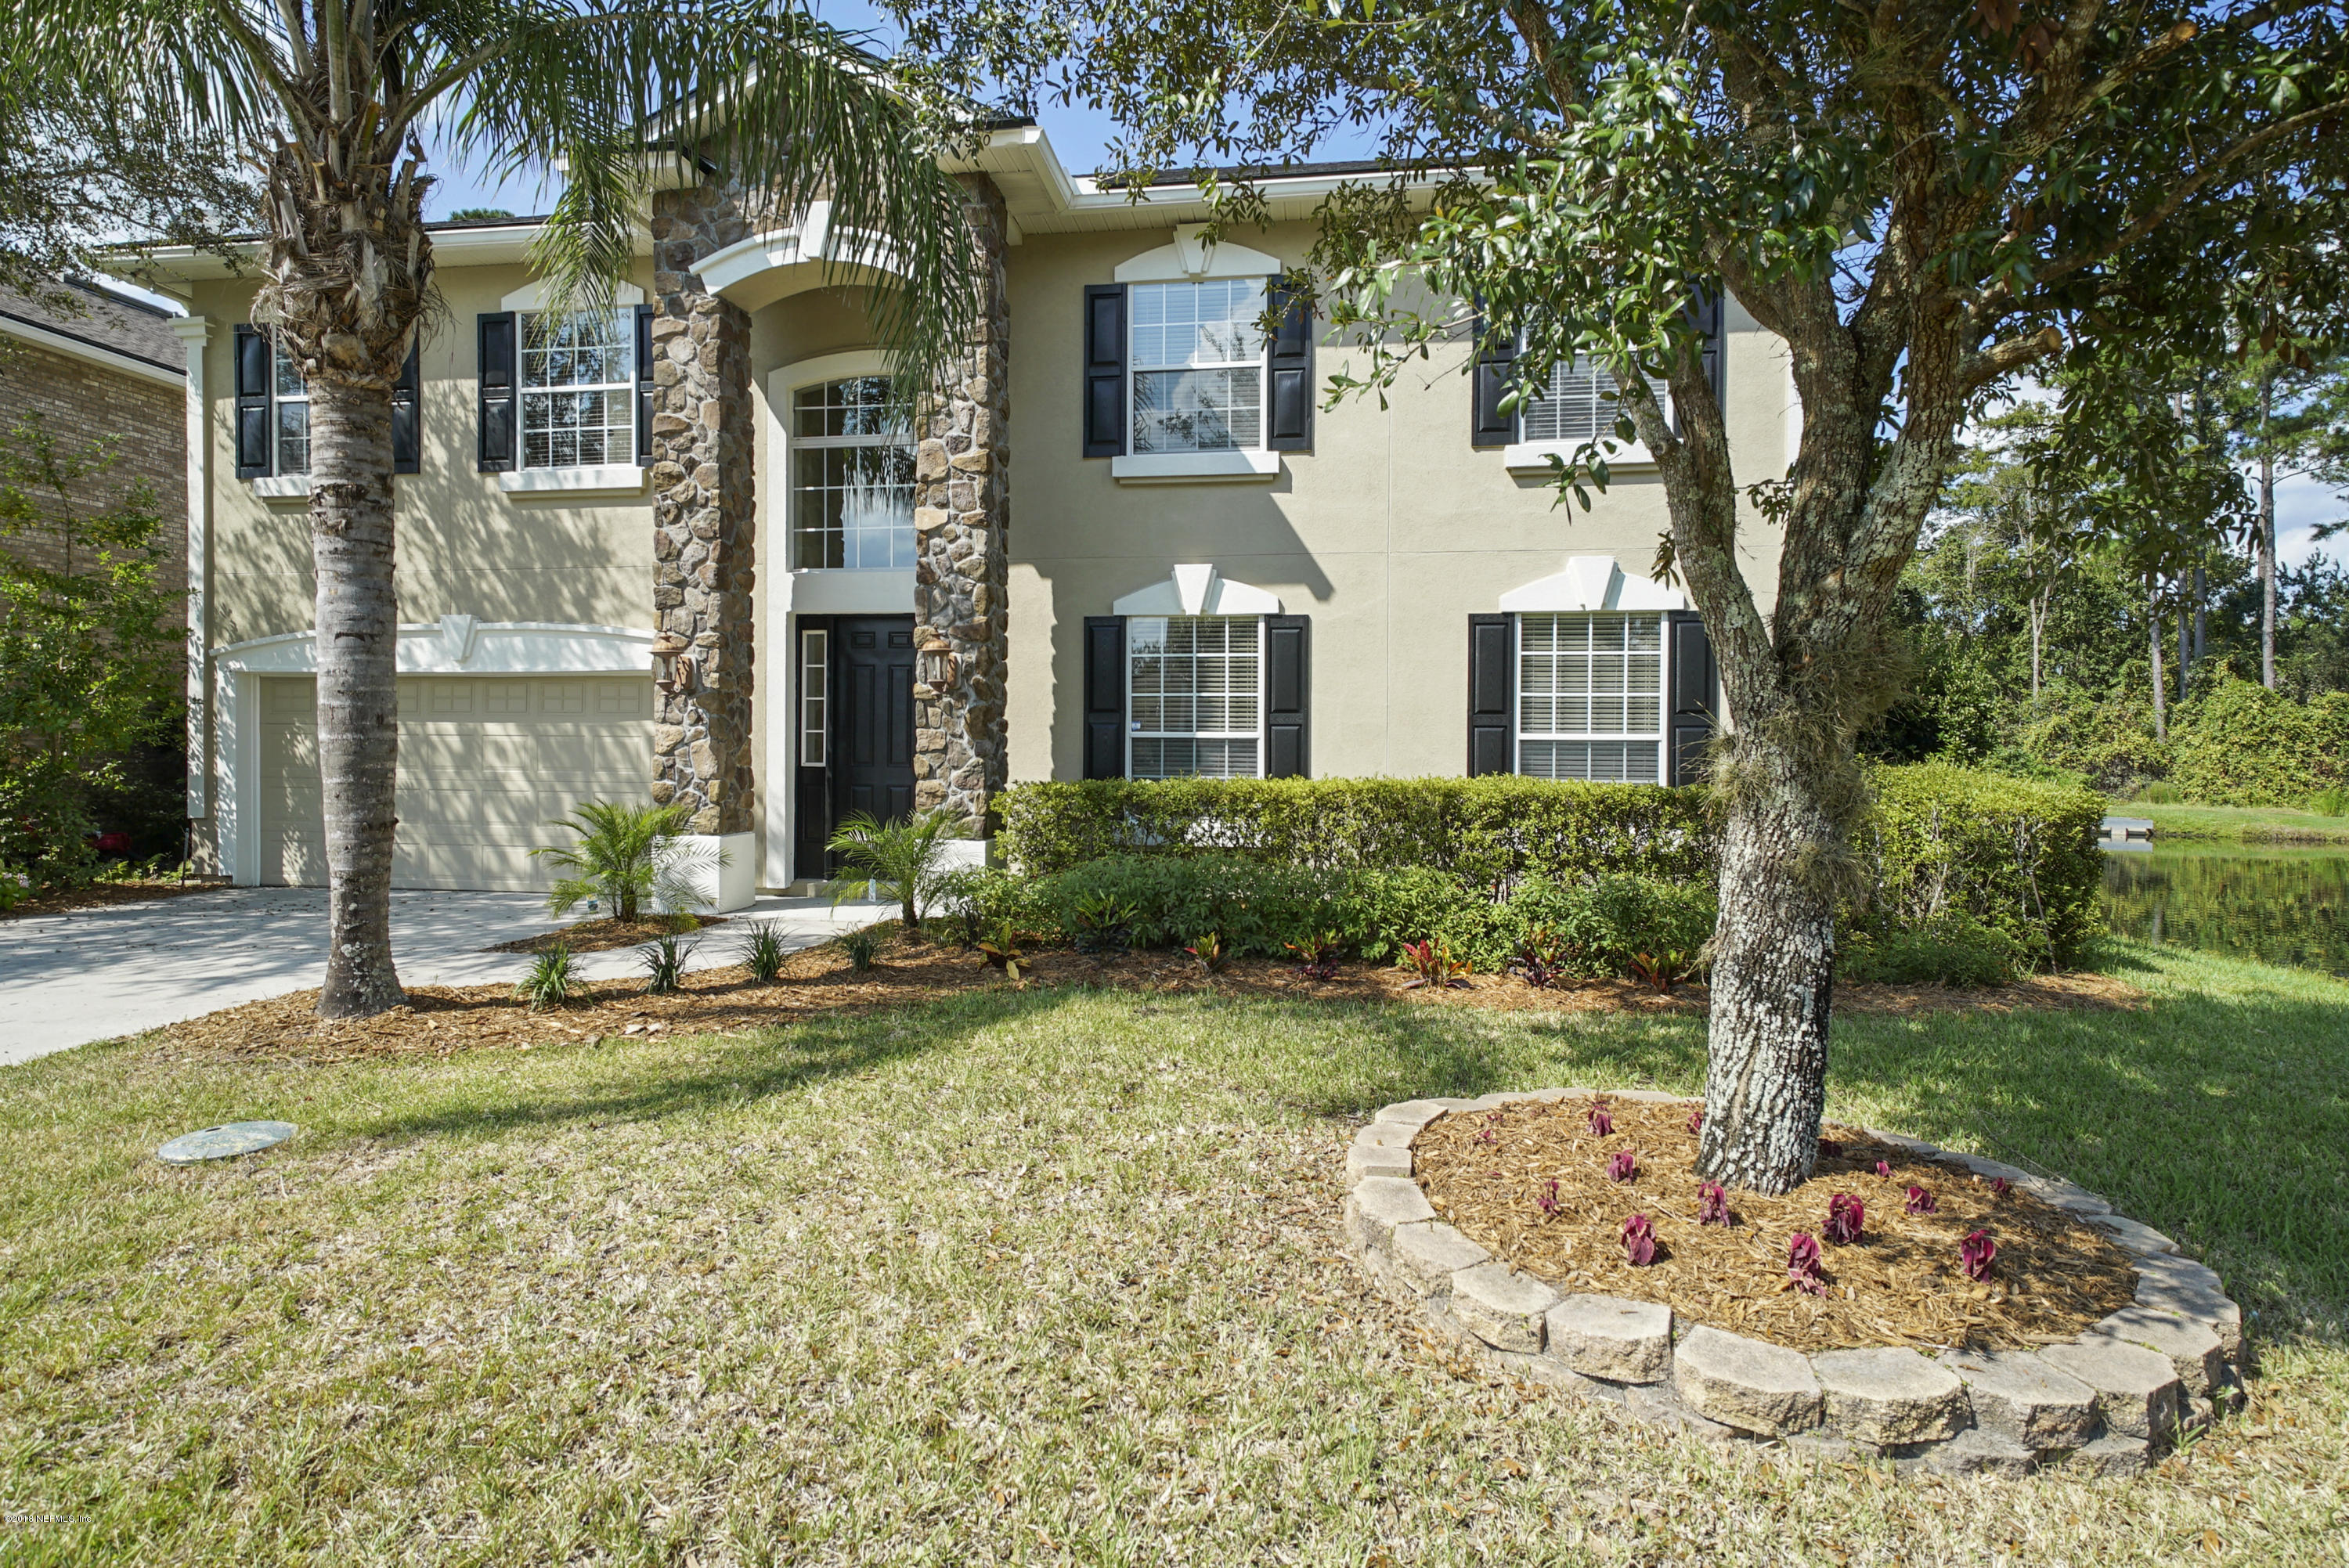 1520 MAJESTIC VIEW, FLEMING ISLAND, FLORIDA 32003, 6 Bedrooms Bedrooms, ,4 BathroomsBathrooms,Residential - single family,For sale,MAJESTIC VIEW,960268